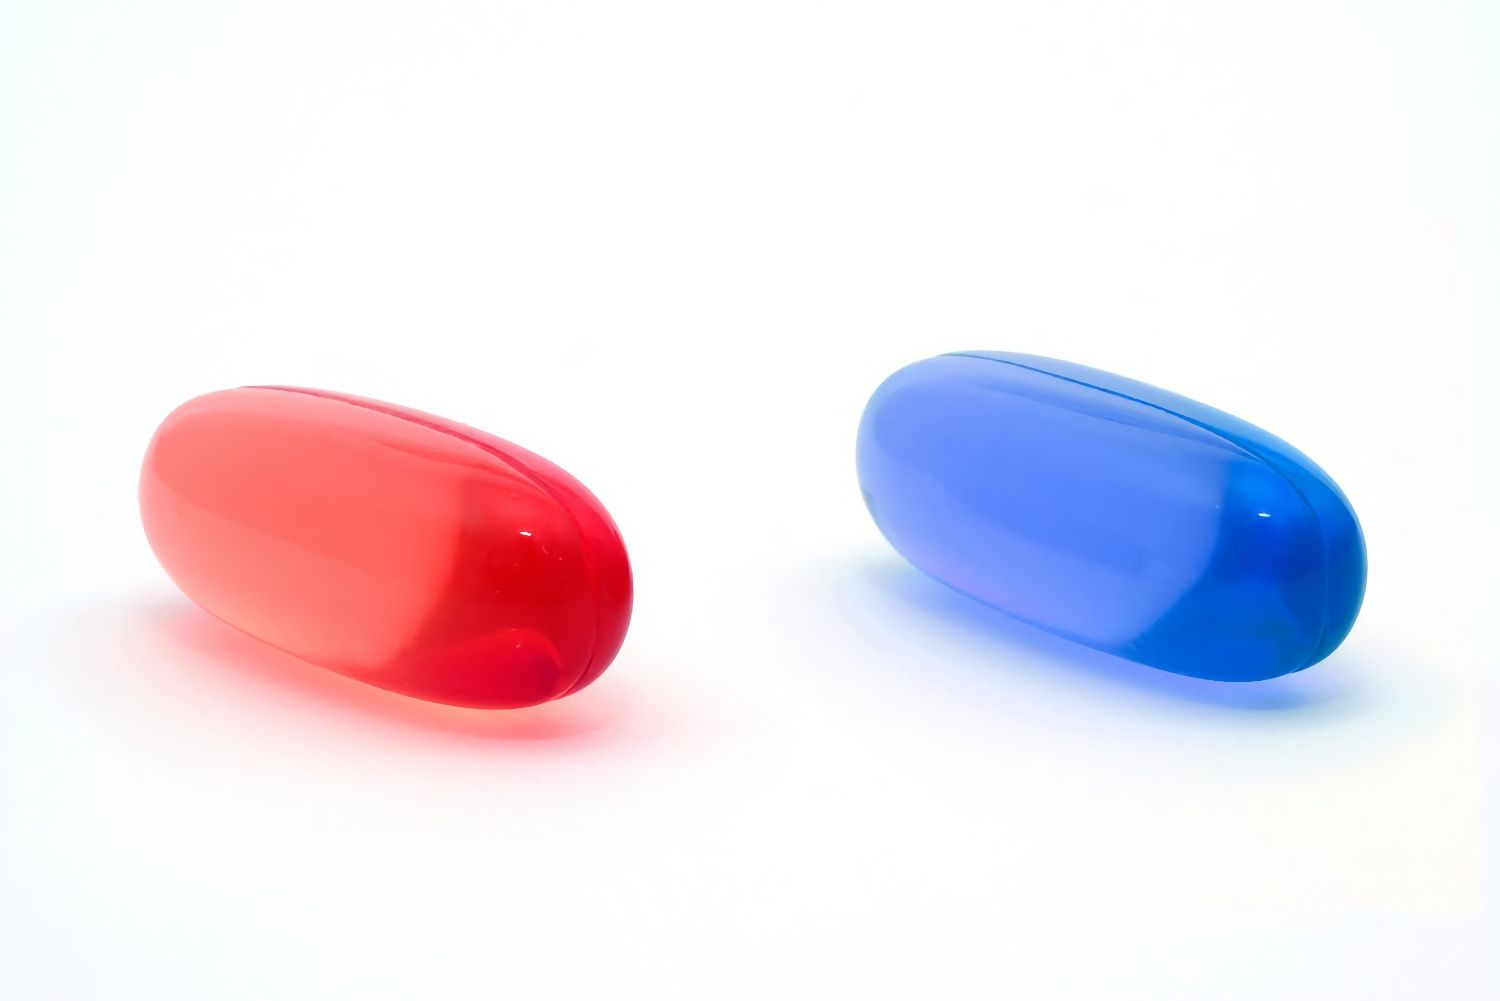 The red pill path vs the blue pill path